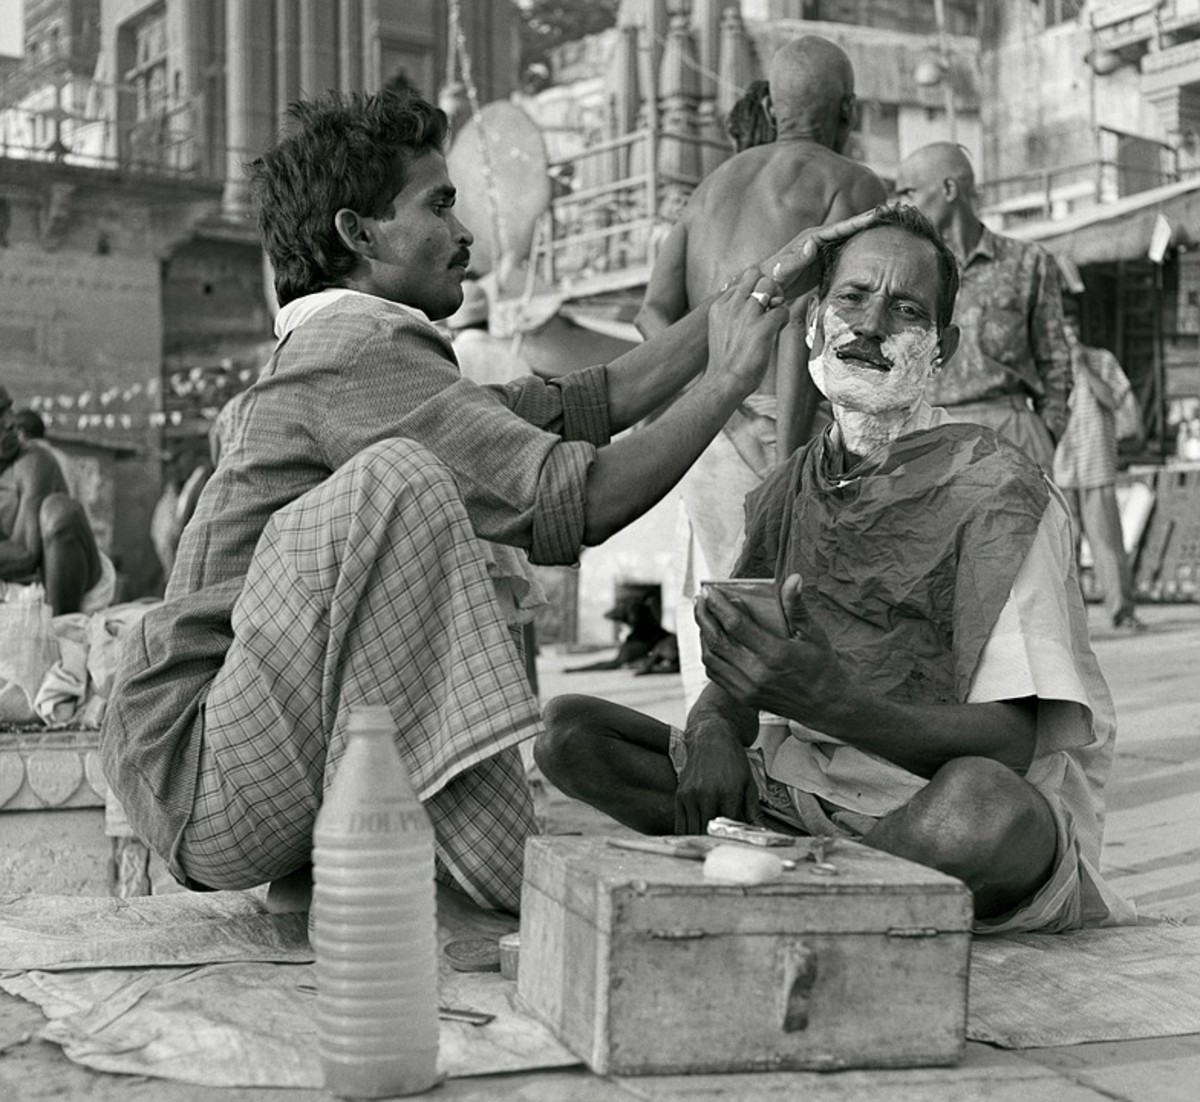 This is a man shaving another man. Teens in my day just shaved by ourselves--part of our growing up ritual in America.